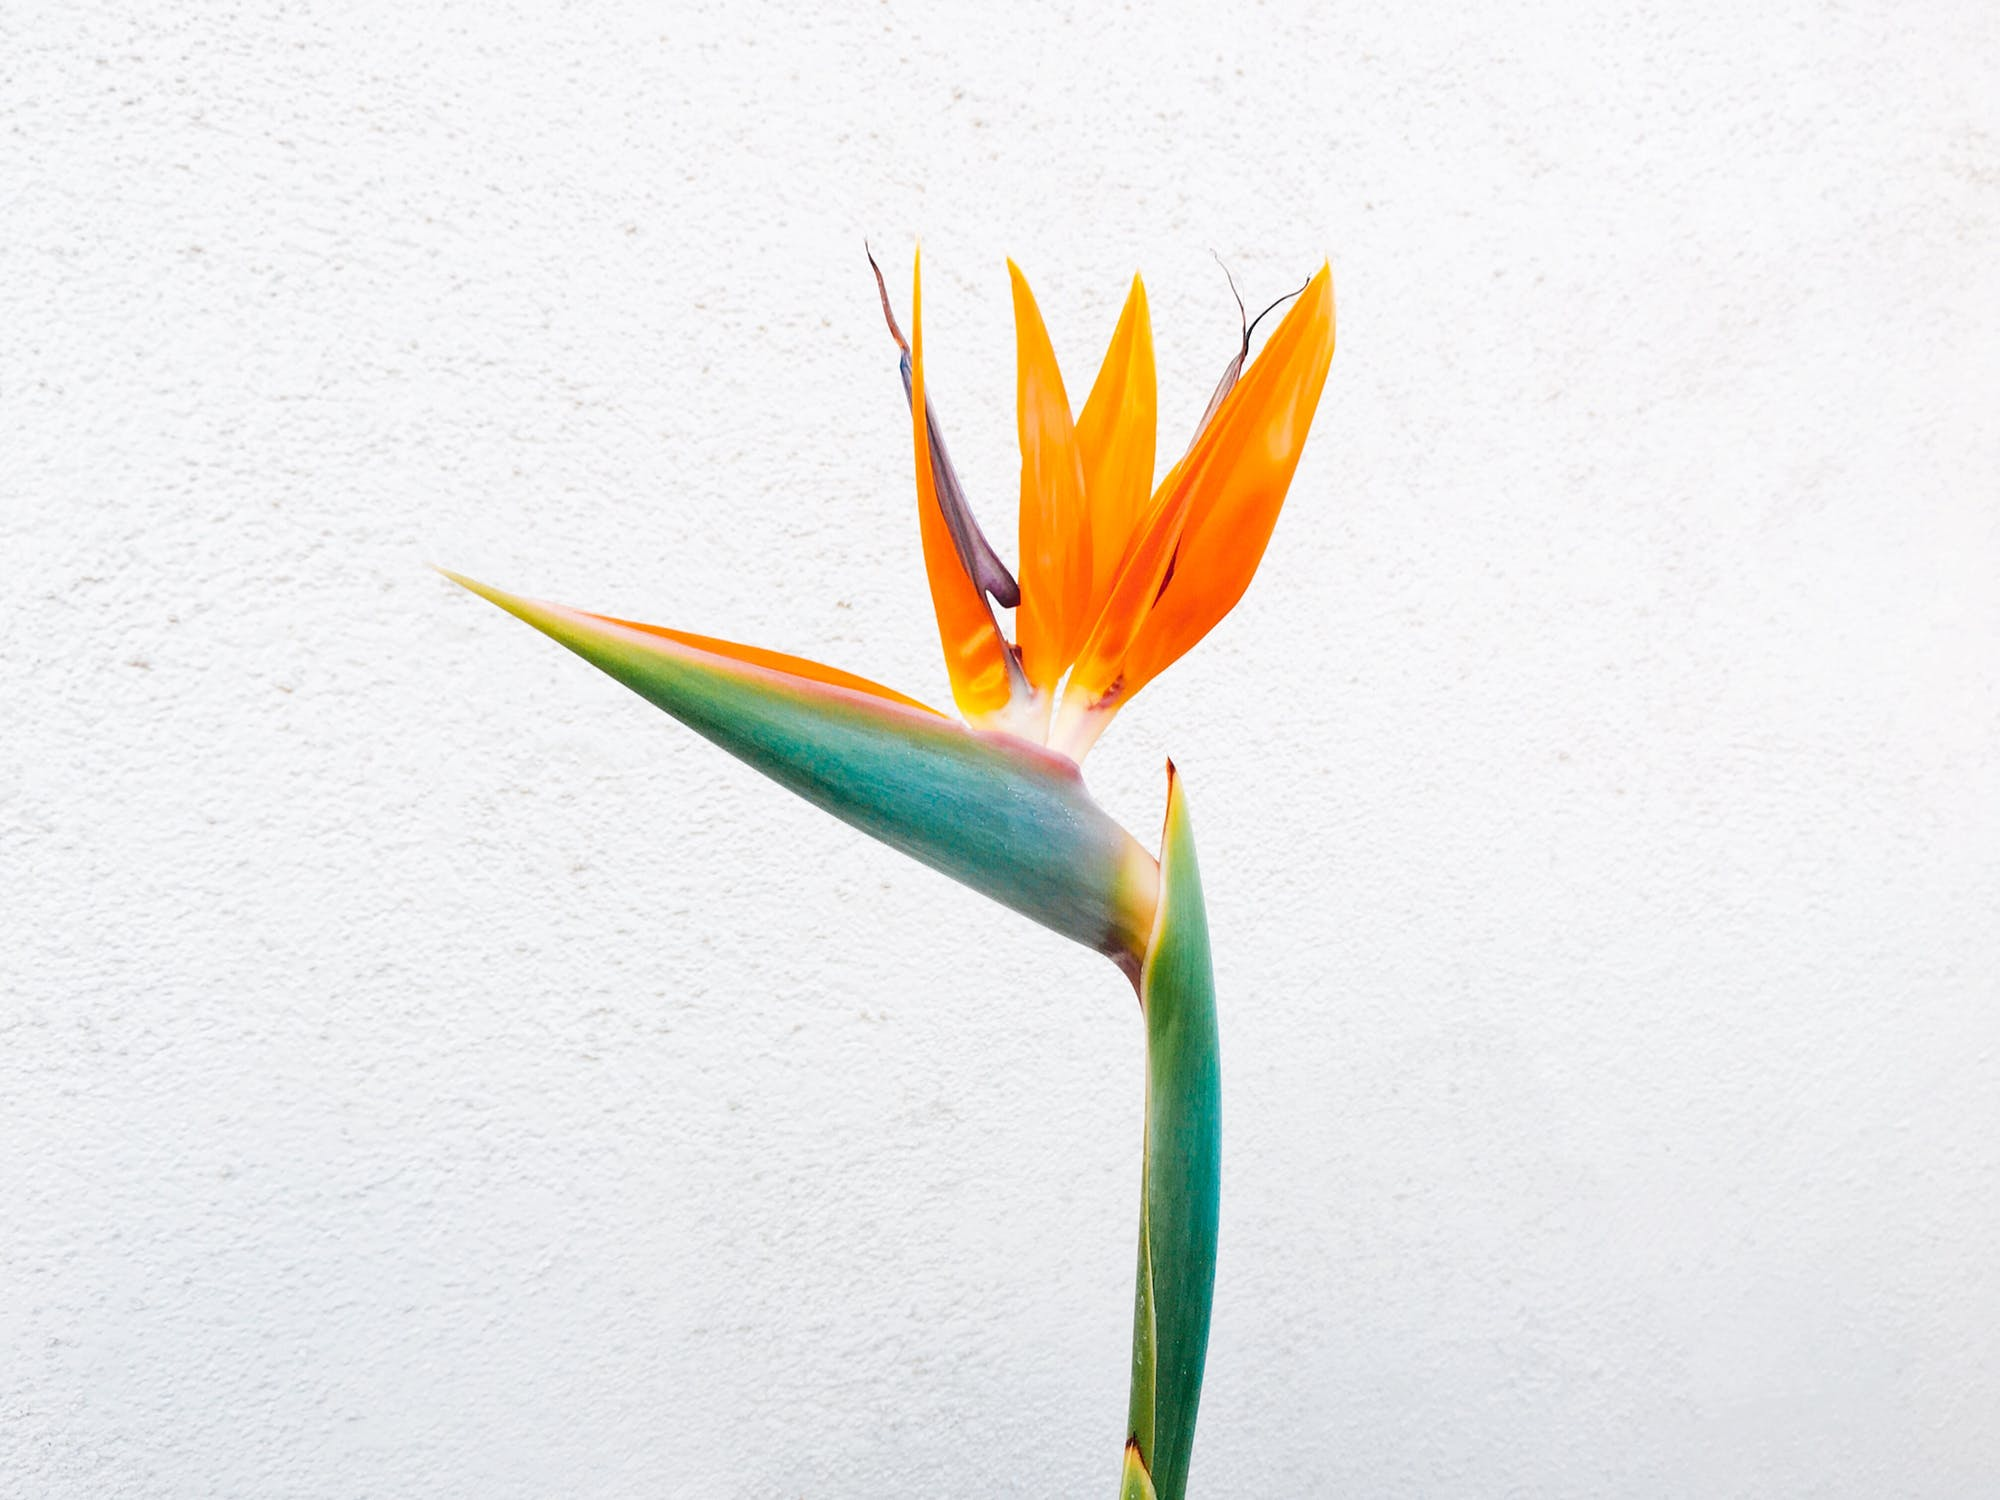 birds of paradise crane flower